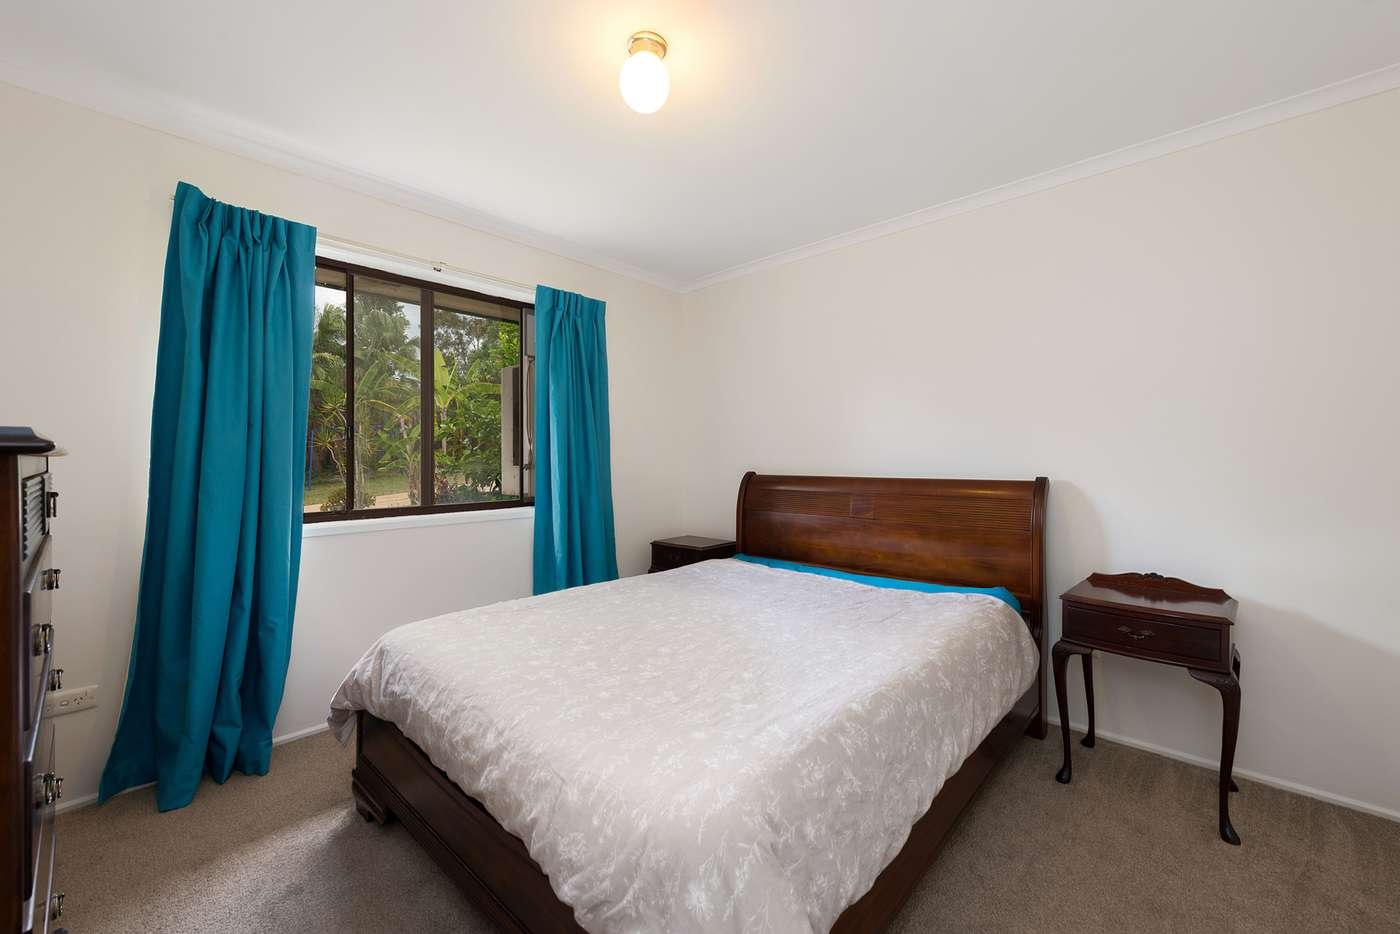 Fifth view of Homely house listing, 14 Marlock Street, Bellbowrie QLD 4070